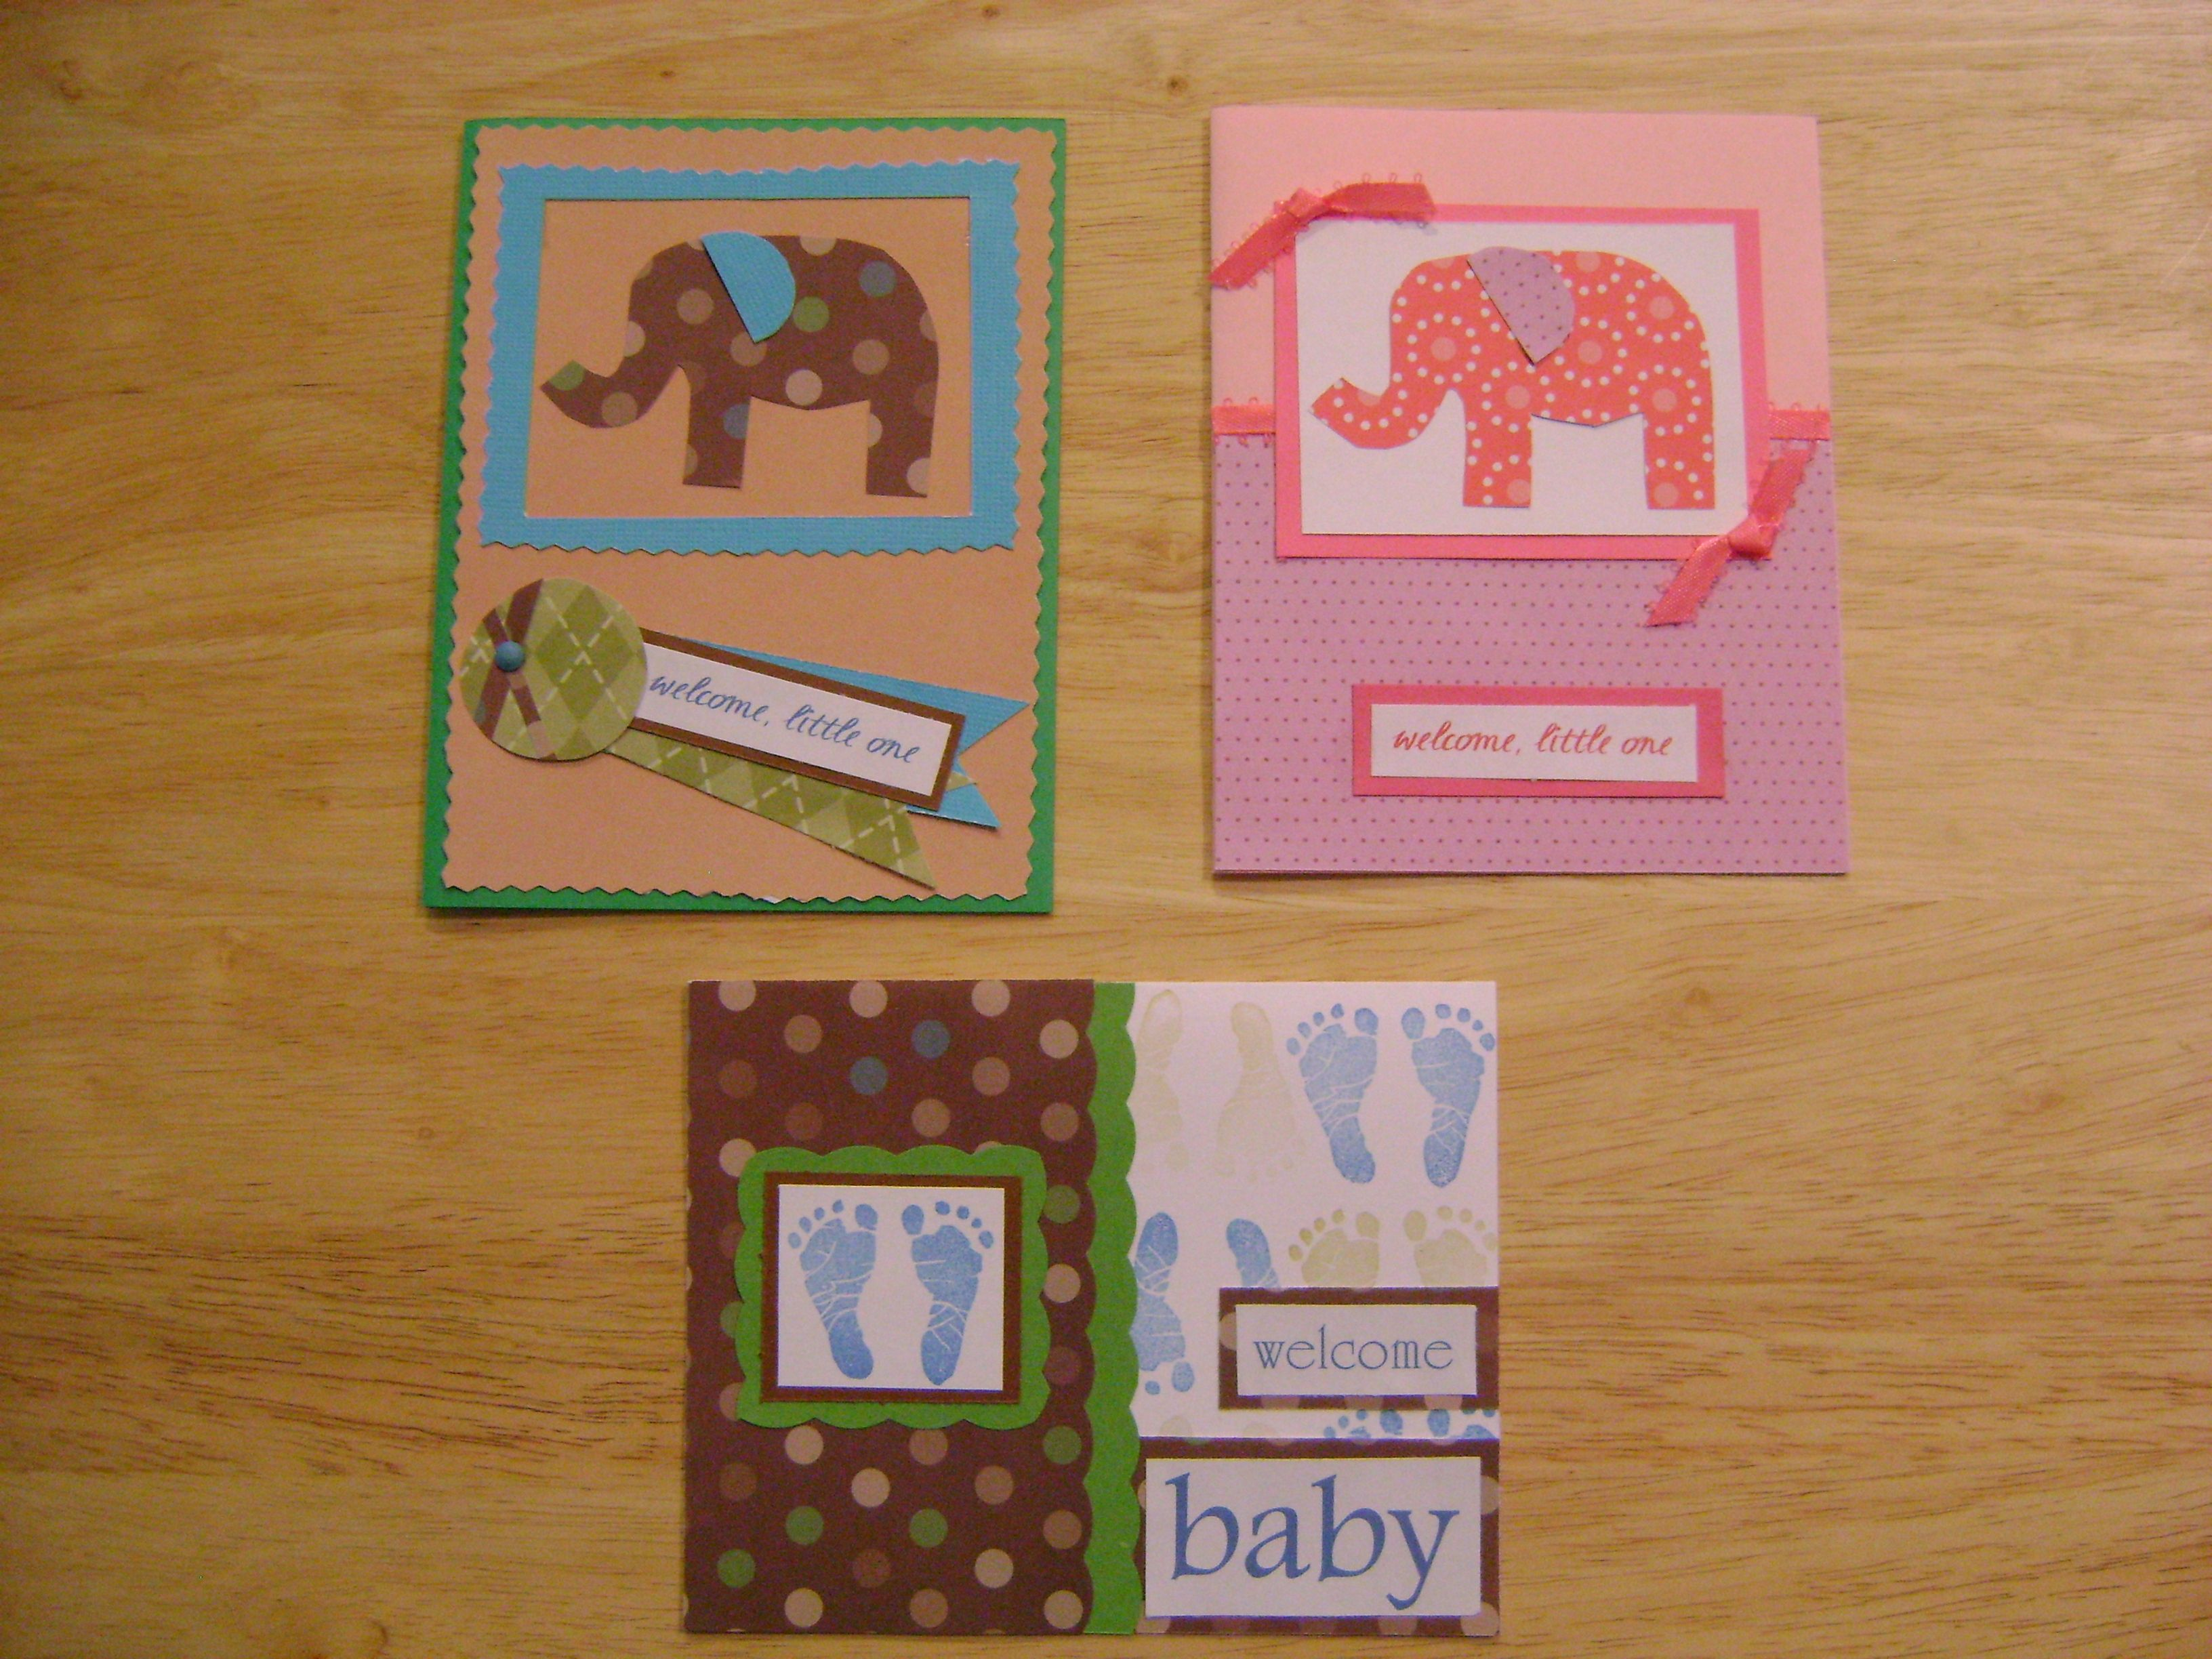 homemade baby cards | Paper Crafts and Stationery | Pinterest